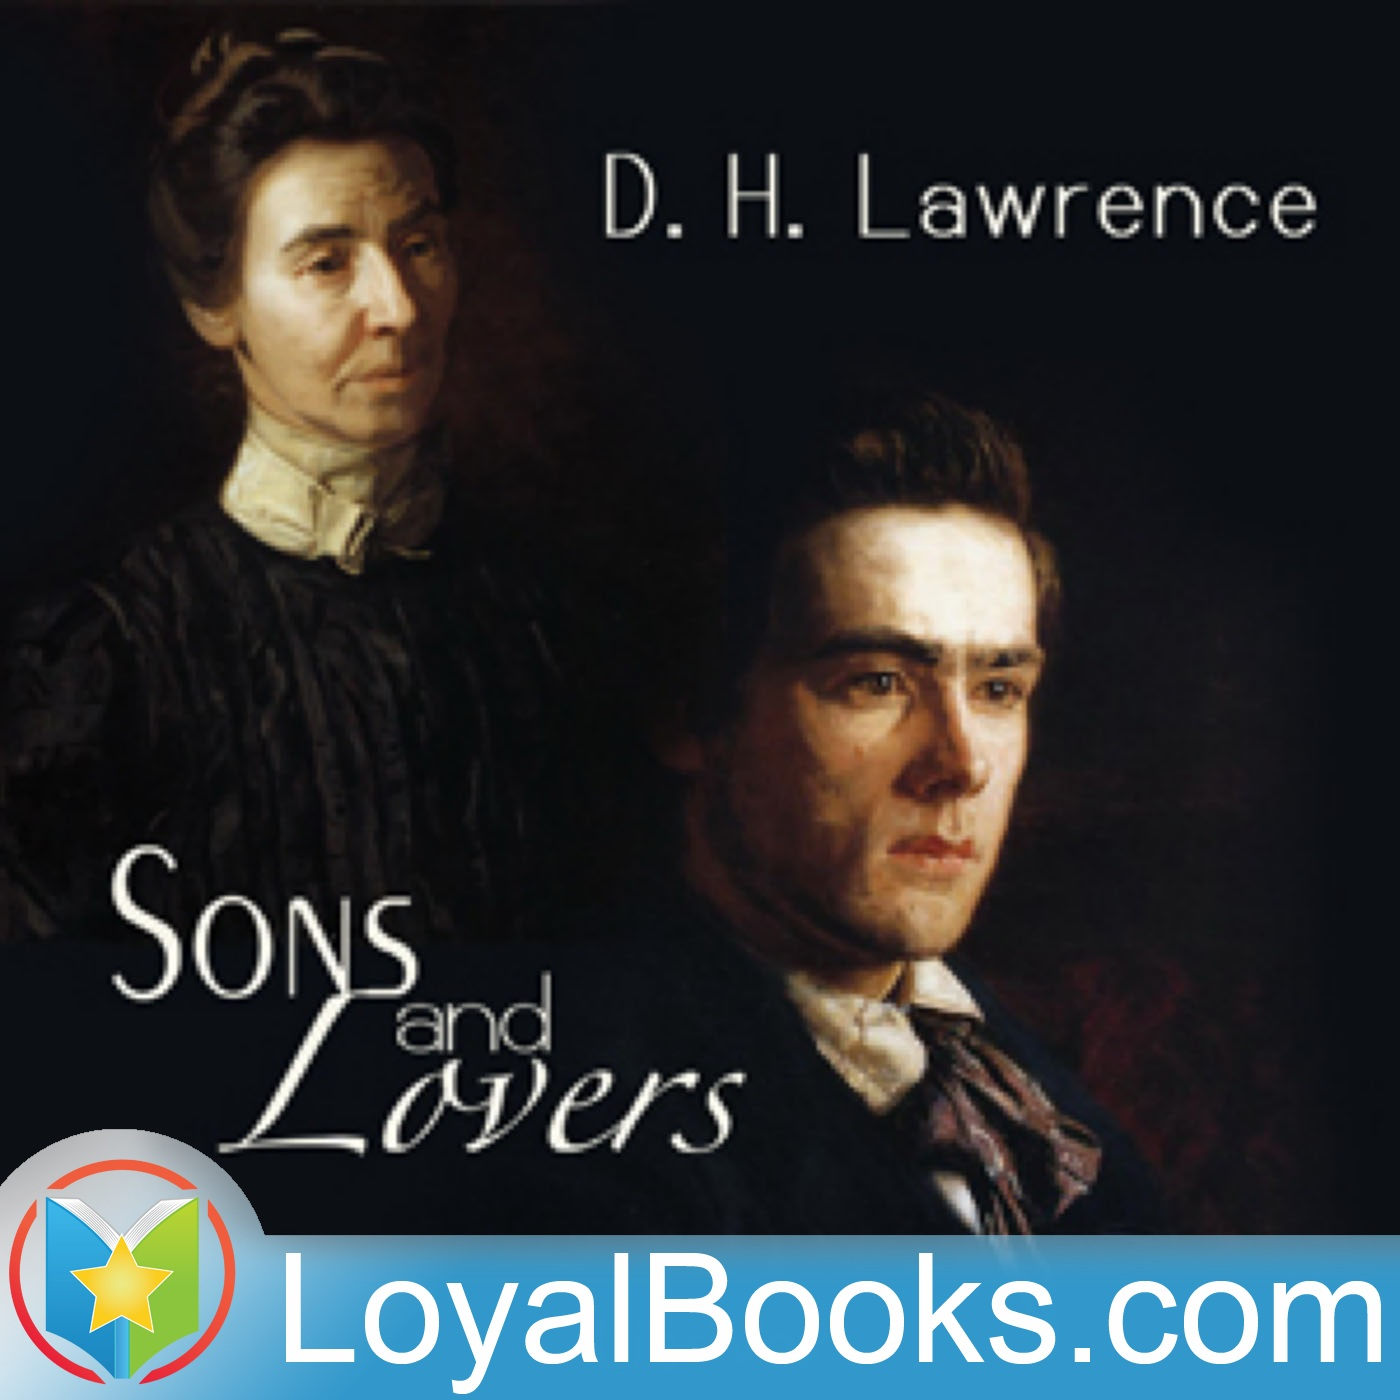 <![CDATA[Sons and Lovers by D. H. Lawrence]]>